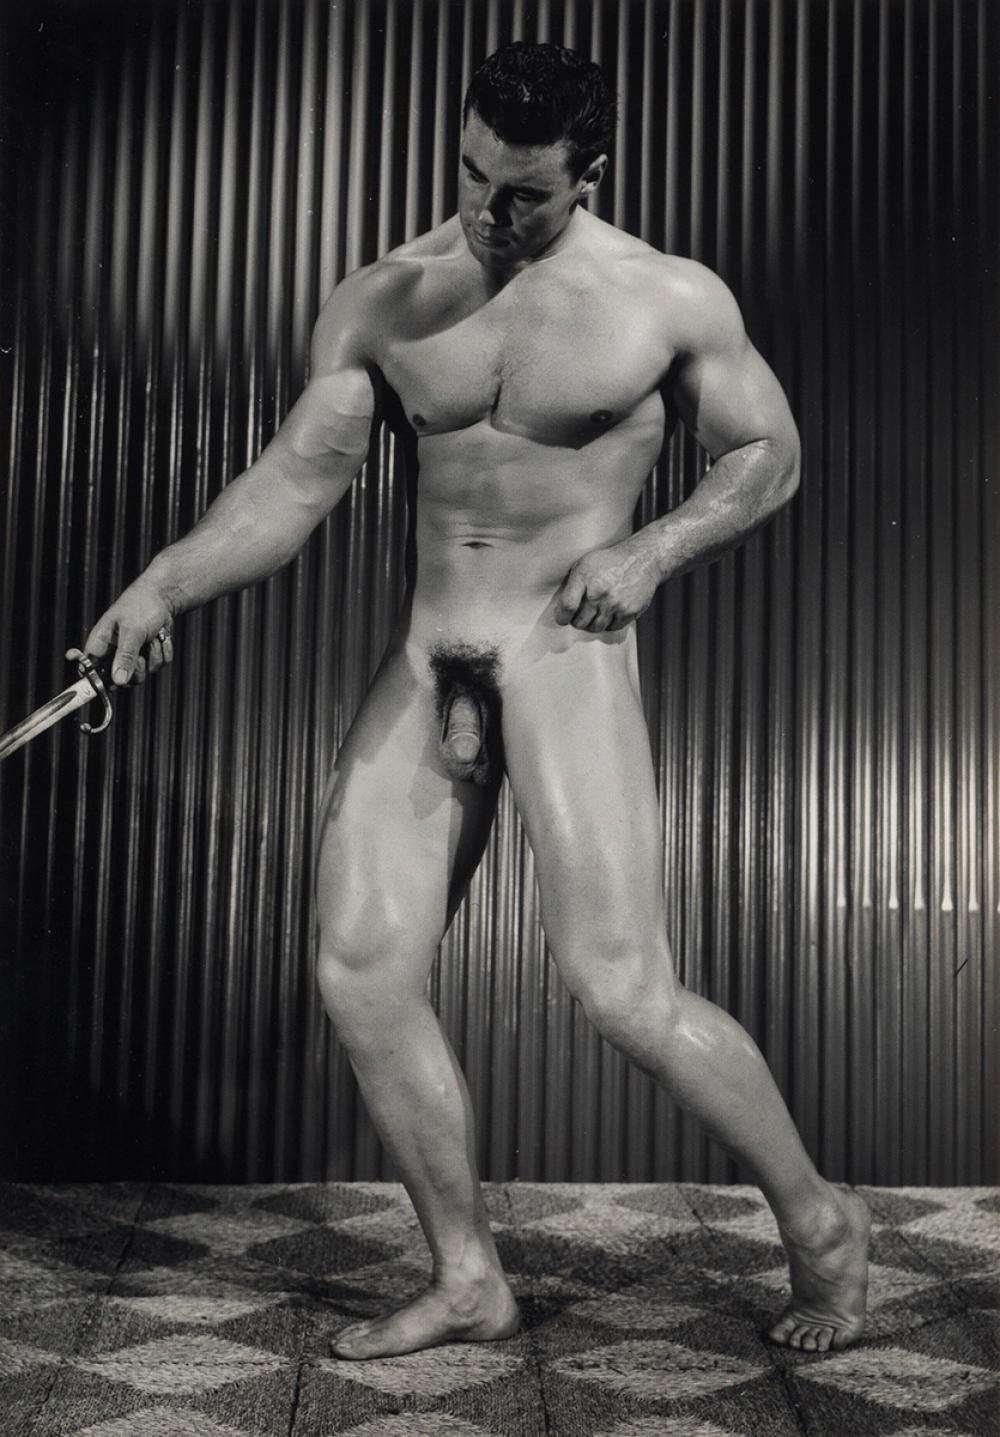 BRUCE OF LA (BRUCE BELLAS) (1909-1974)  Binder containing 100 photographs of hunky bodybuilders arranged by Bruce's inventory numbers,